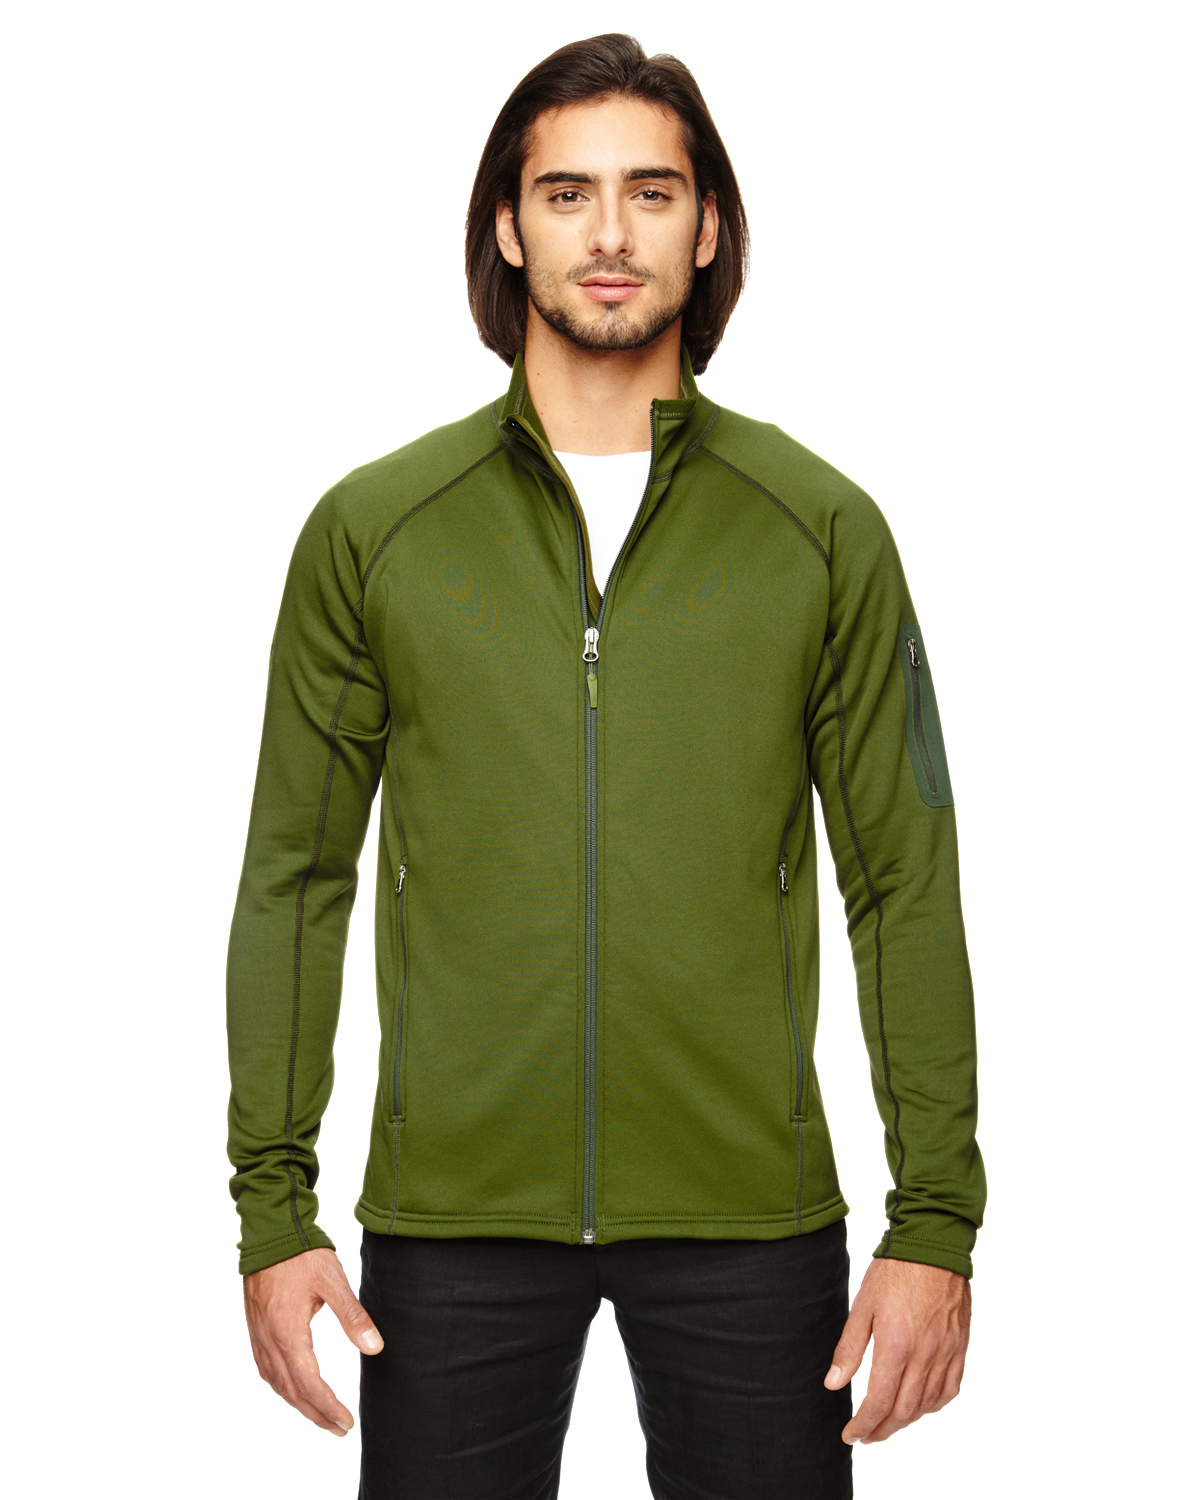 Marmot - 80840 Men's Stretch Fleece Jacket